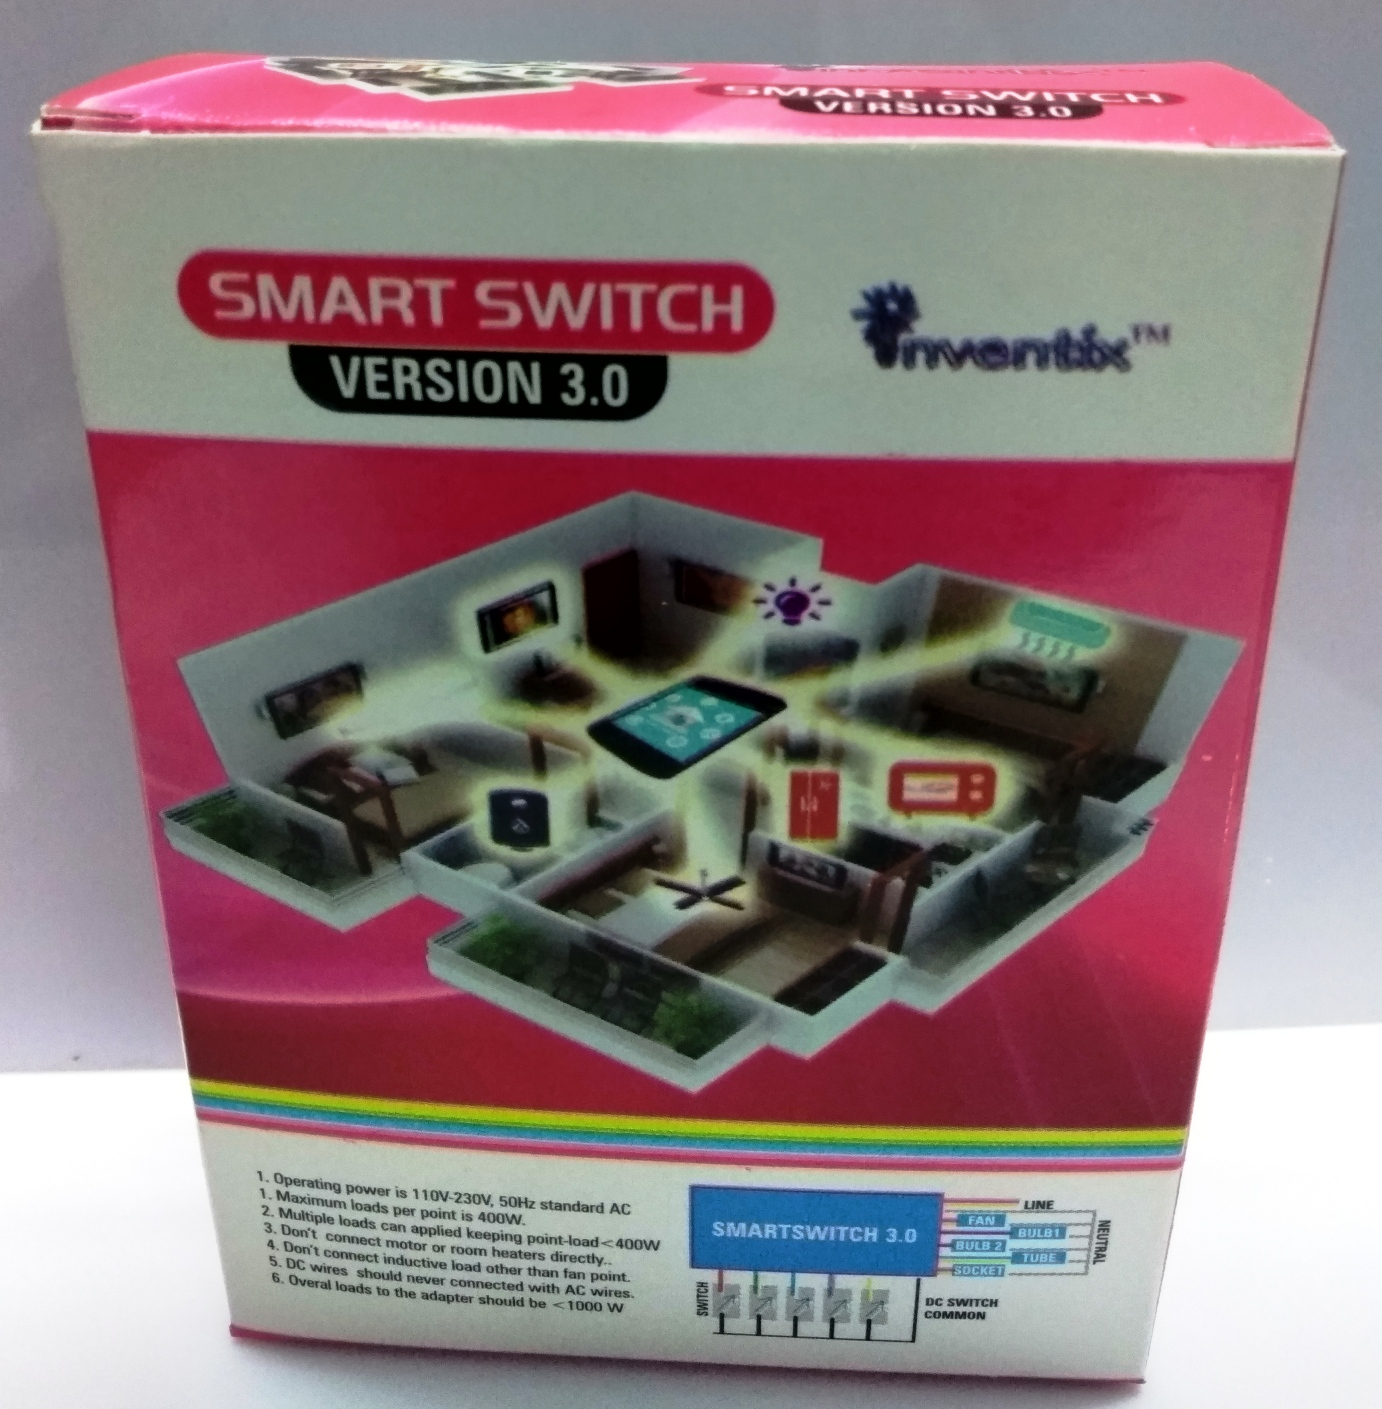 Smartswitch 3.0